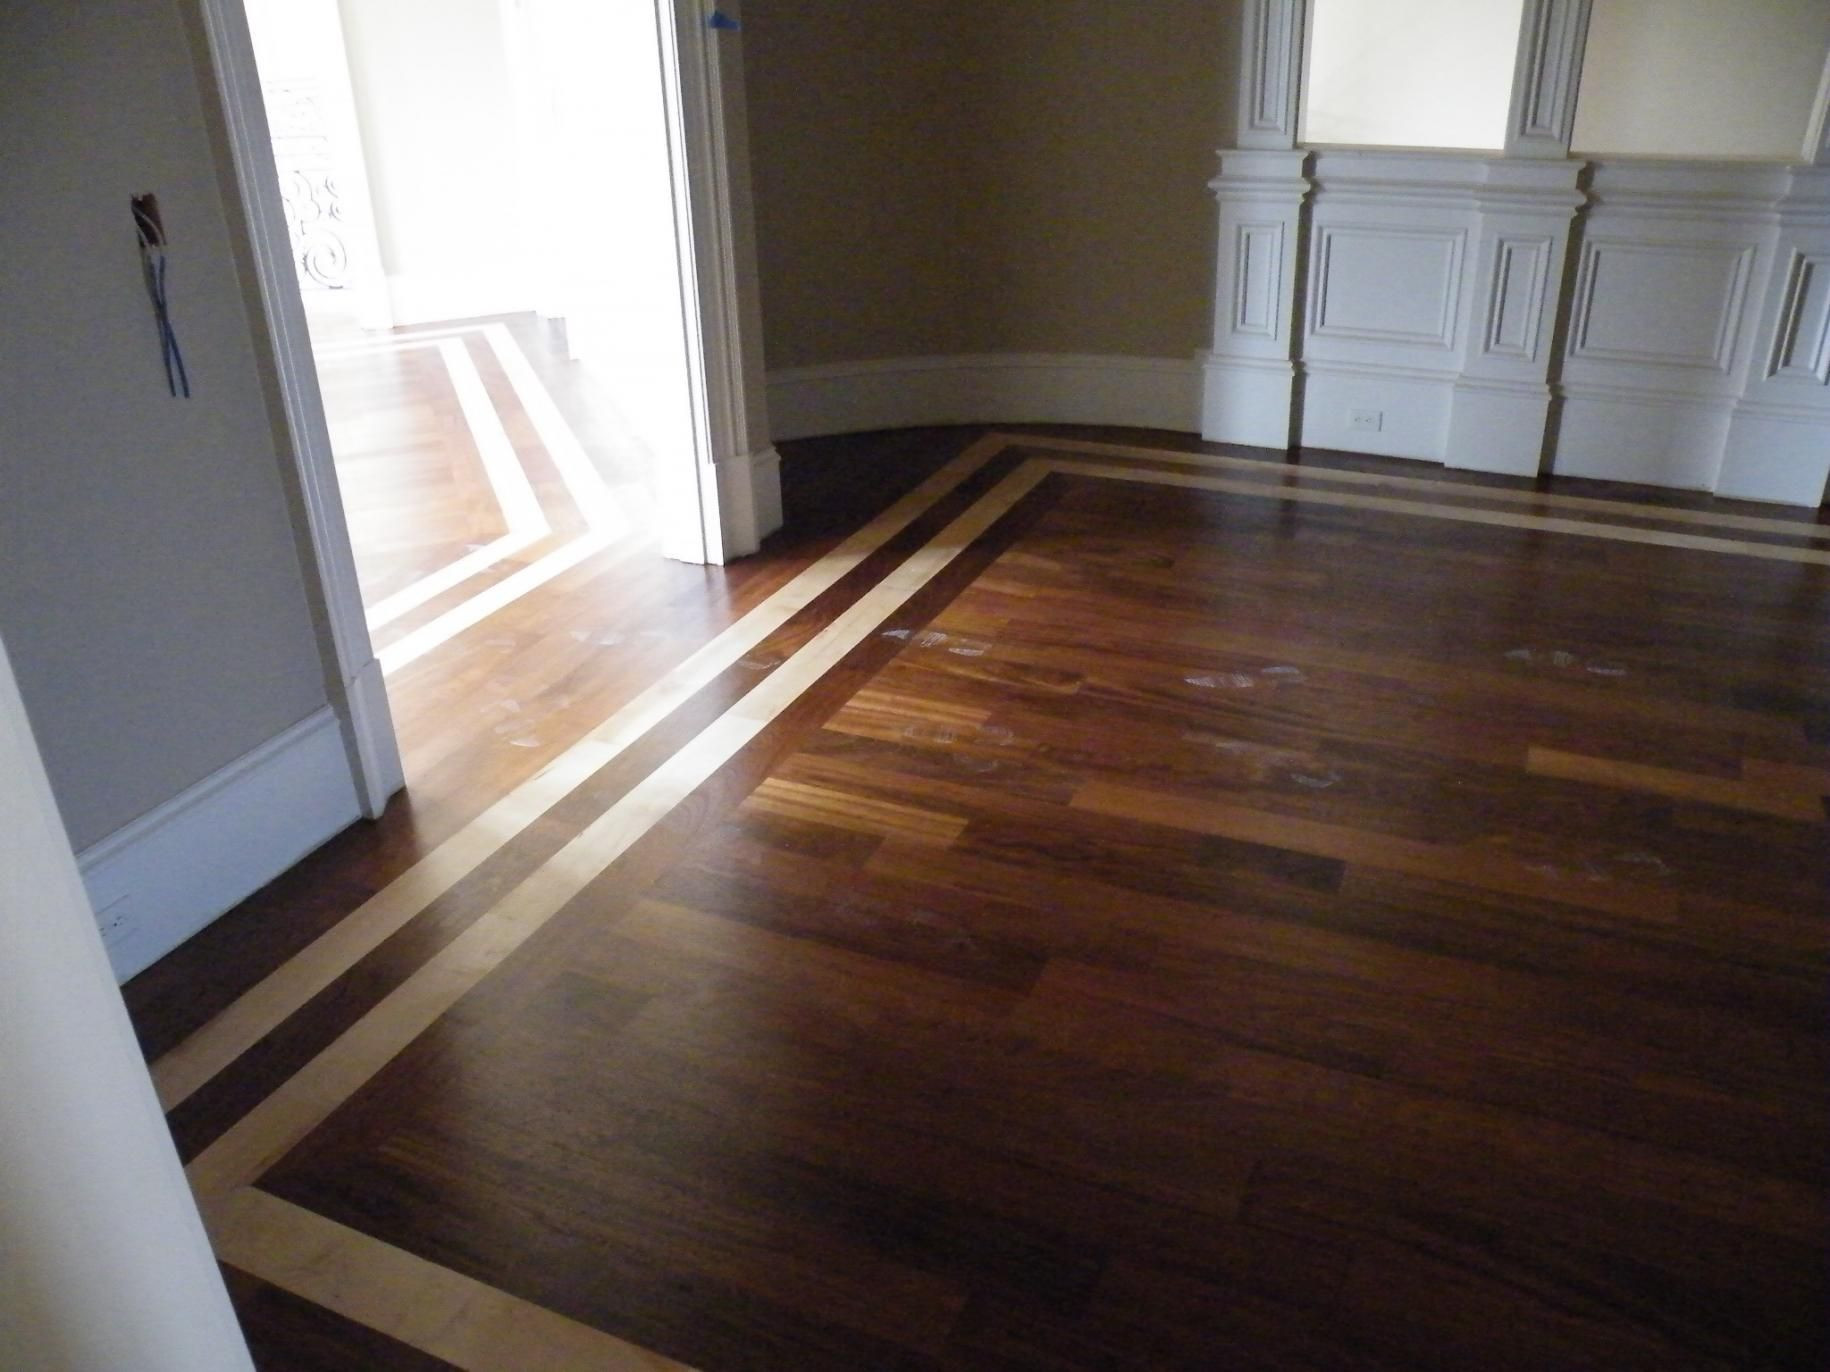 hardwood floor refinishing chicago of wood floor borders hardwood floor inlay flooring contractor inside wood floor borders hardwood floor inlay flooring contractor talk